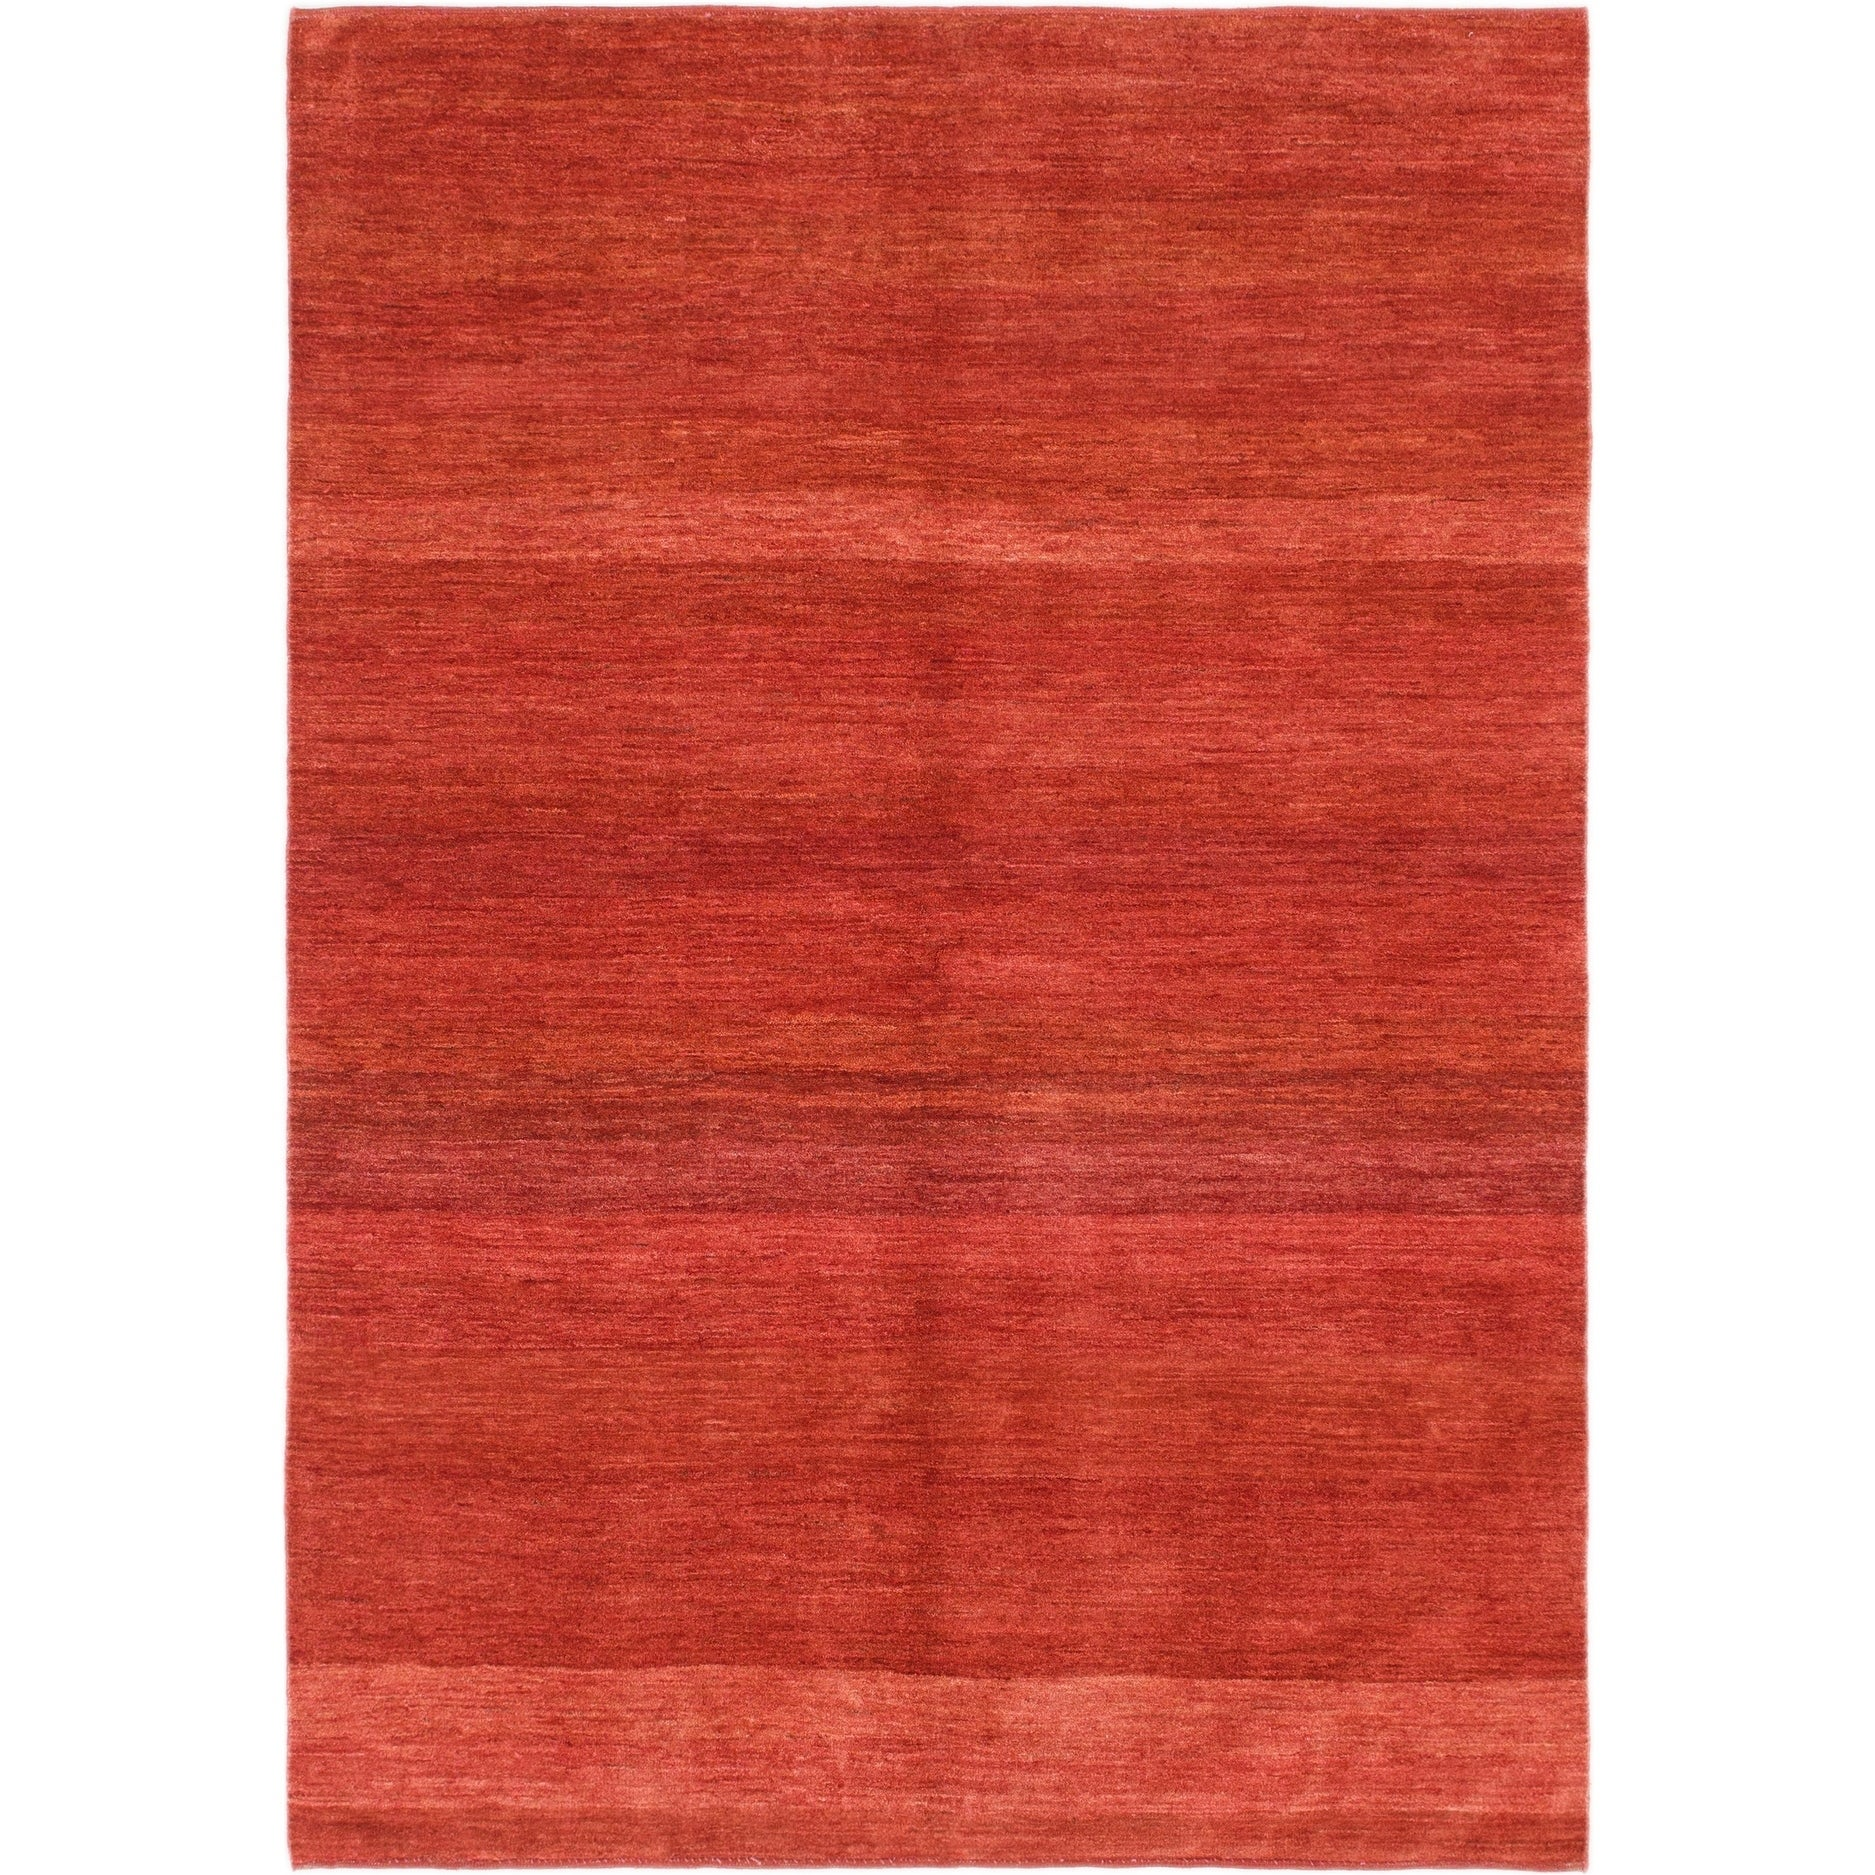 Hand Knotted Kashkuli Gabbeh Wool Area Rug - 5 7 x 8 (Red - 5 7 x 8)